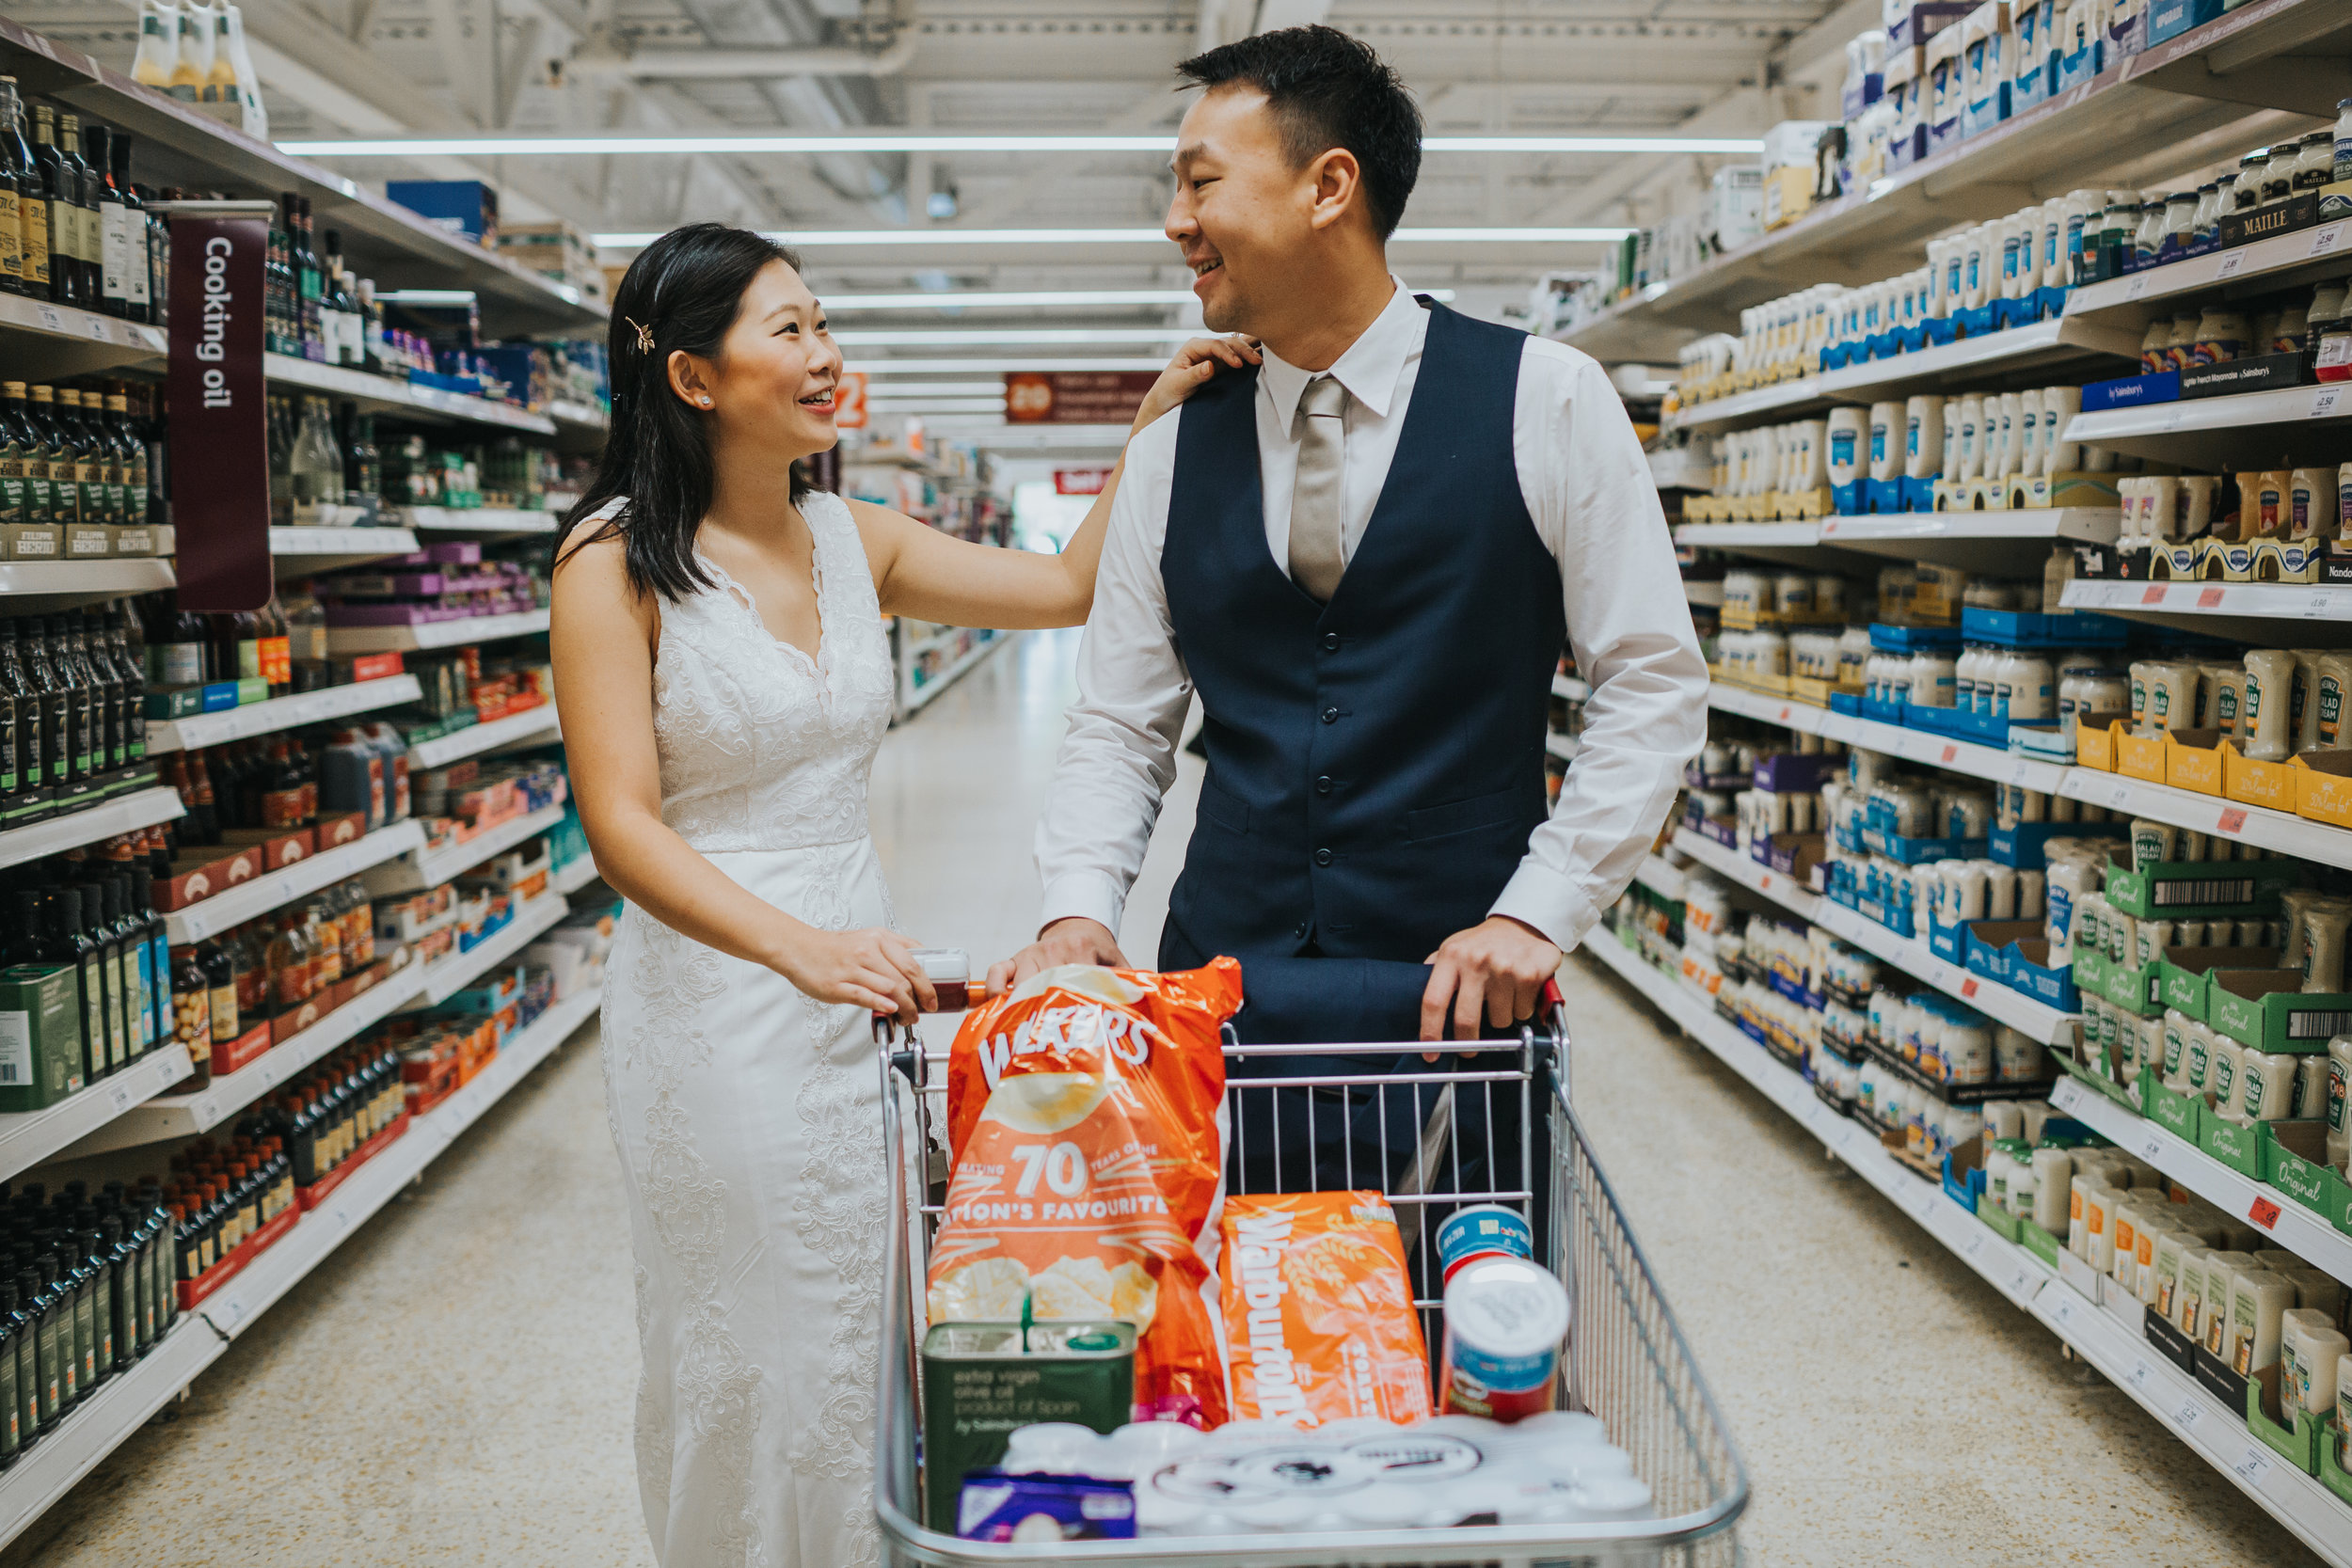 Couple pause together with shopping trolly in supermarket, Manchester.